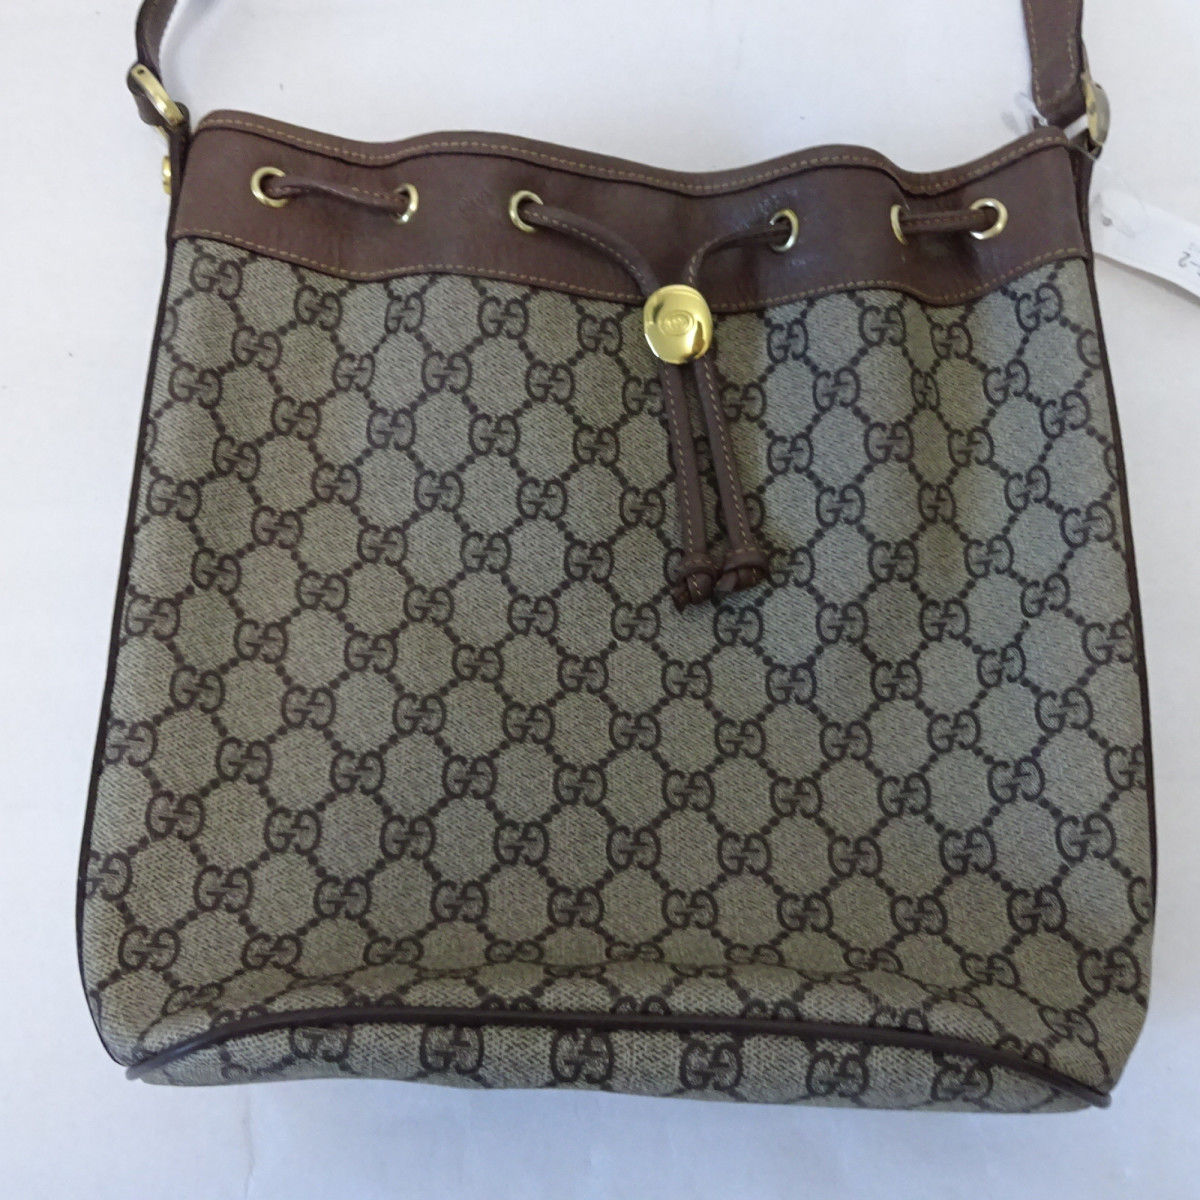 eec79fb5f2f Gucci GG Supreme Bucket Bag. Free Shipping. LXRandCo guarantees the  authenticity of this vintage Gucci Bucket Bag shoulder bag. Crafted in gg  supreme coated ...